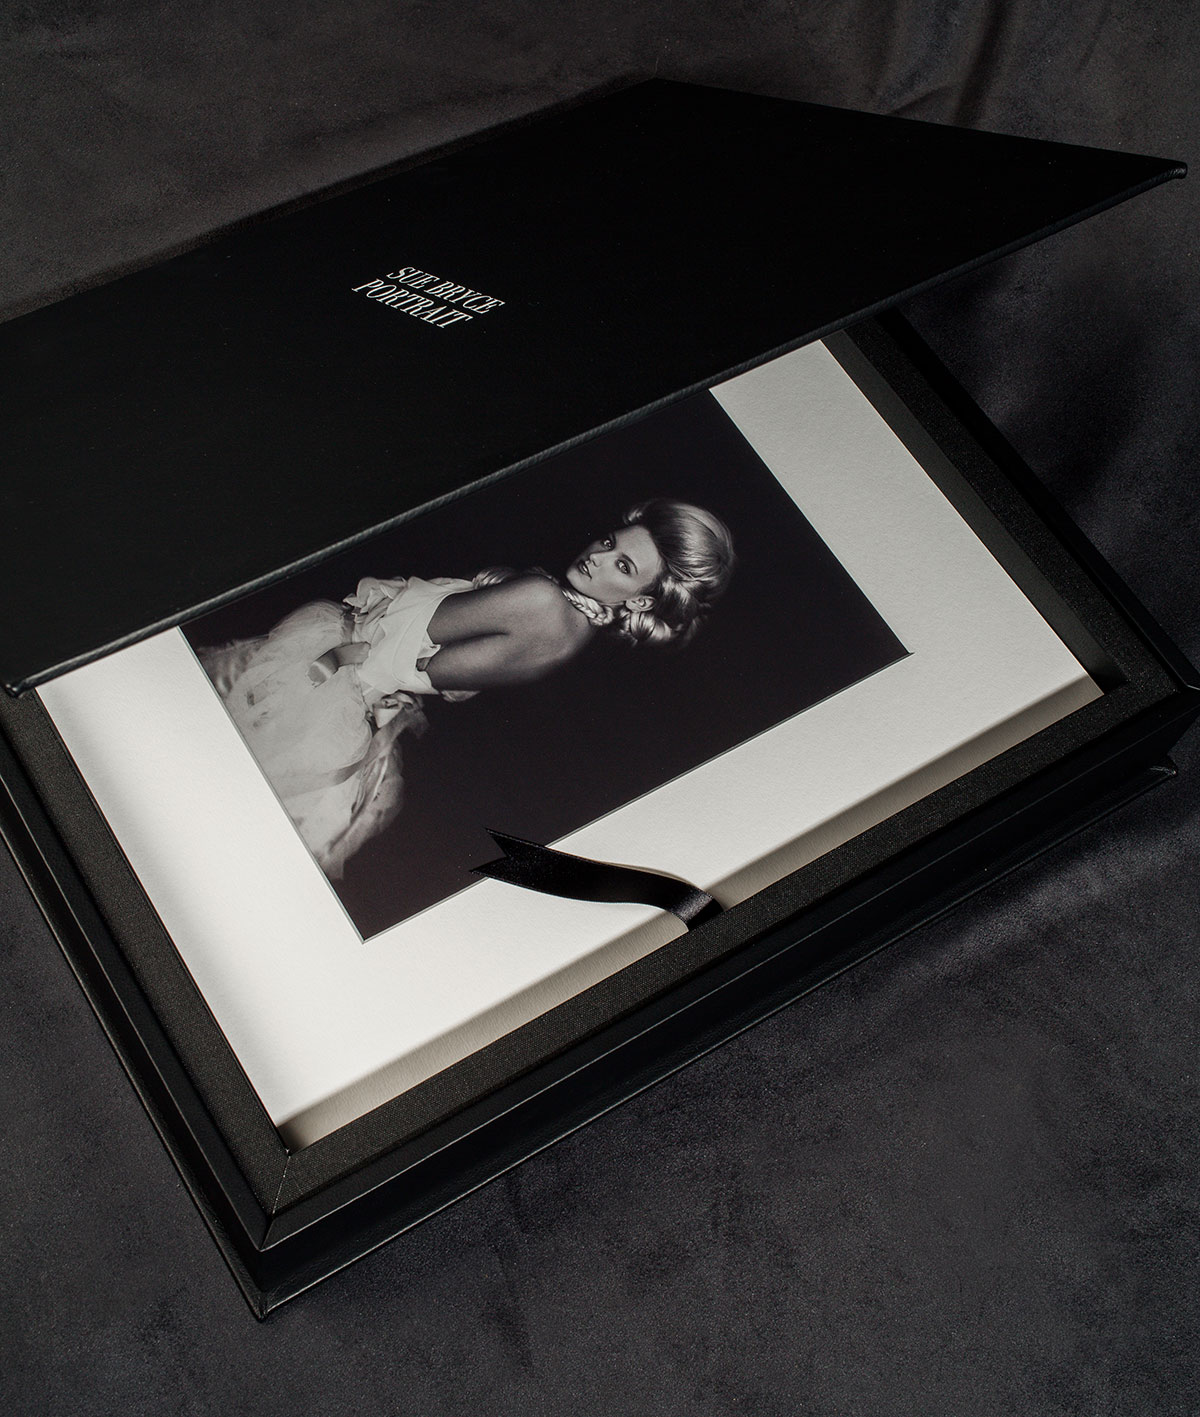 We offer the Leather Folio Box in black.